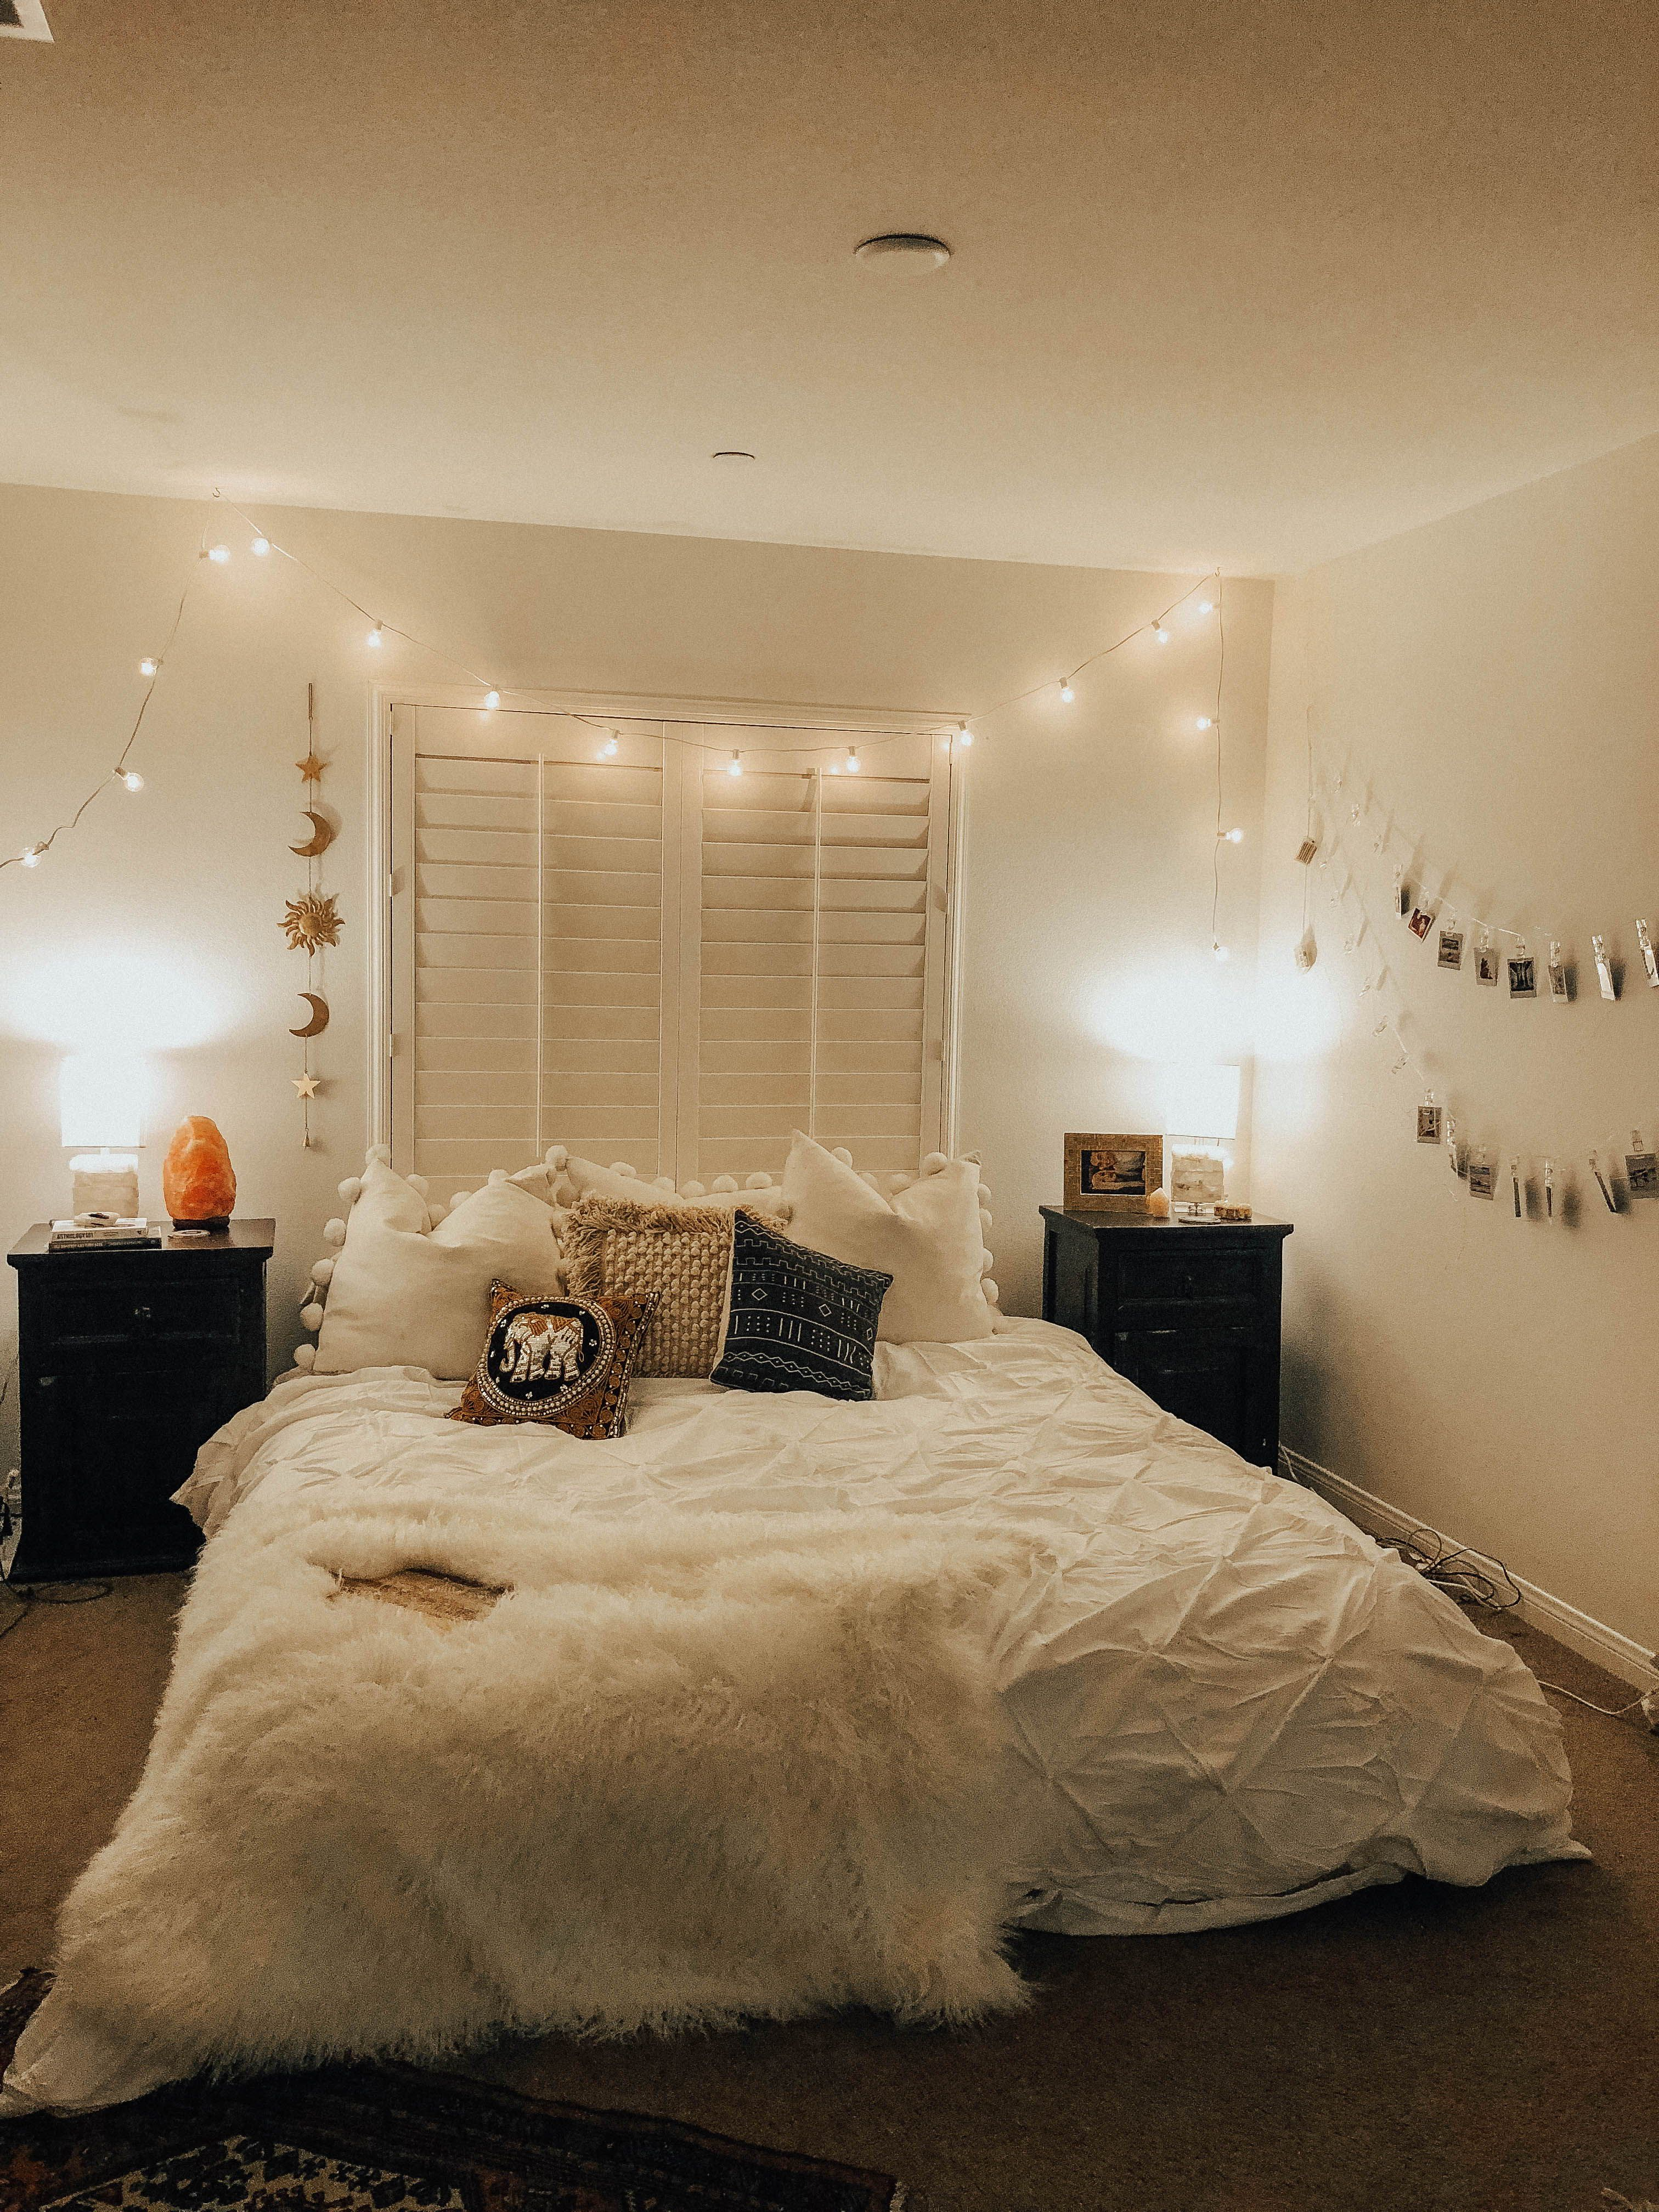 Celestial Wall Hanging Apartment Living Room College Apartment Decor Bedroom Design